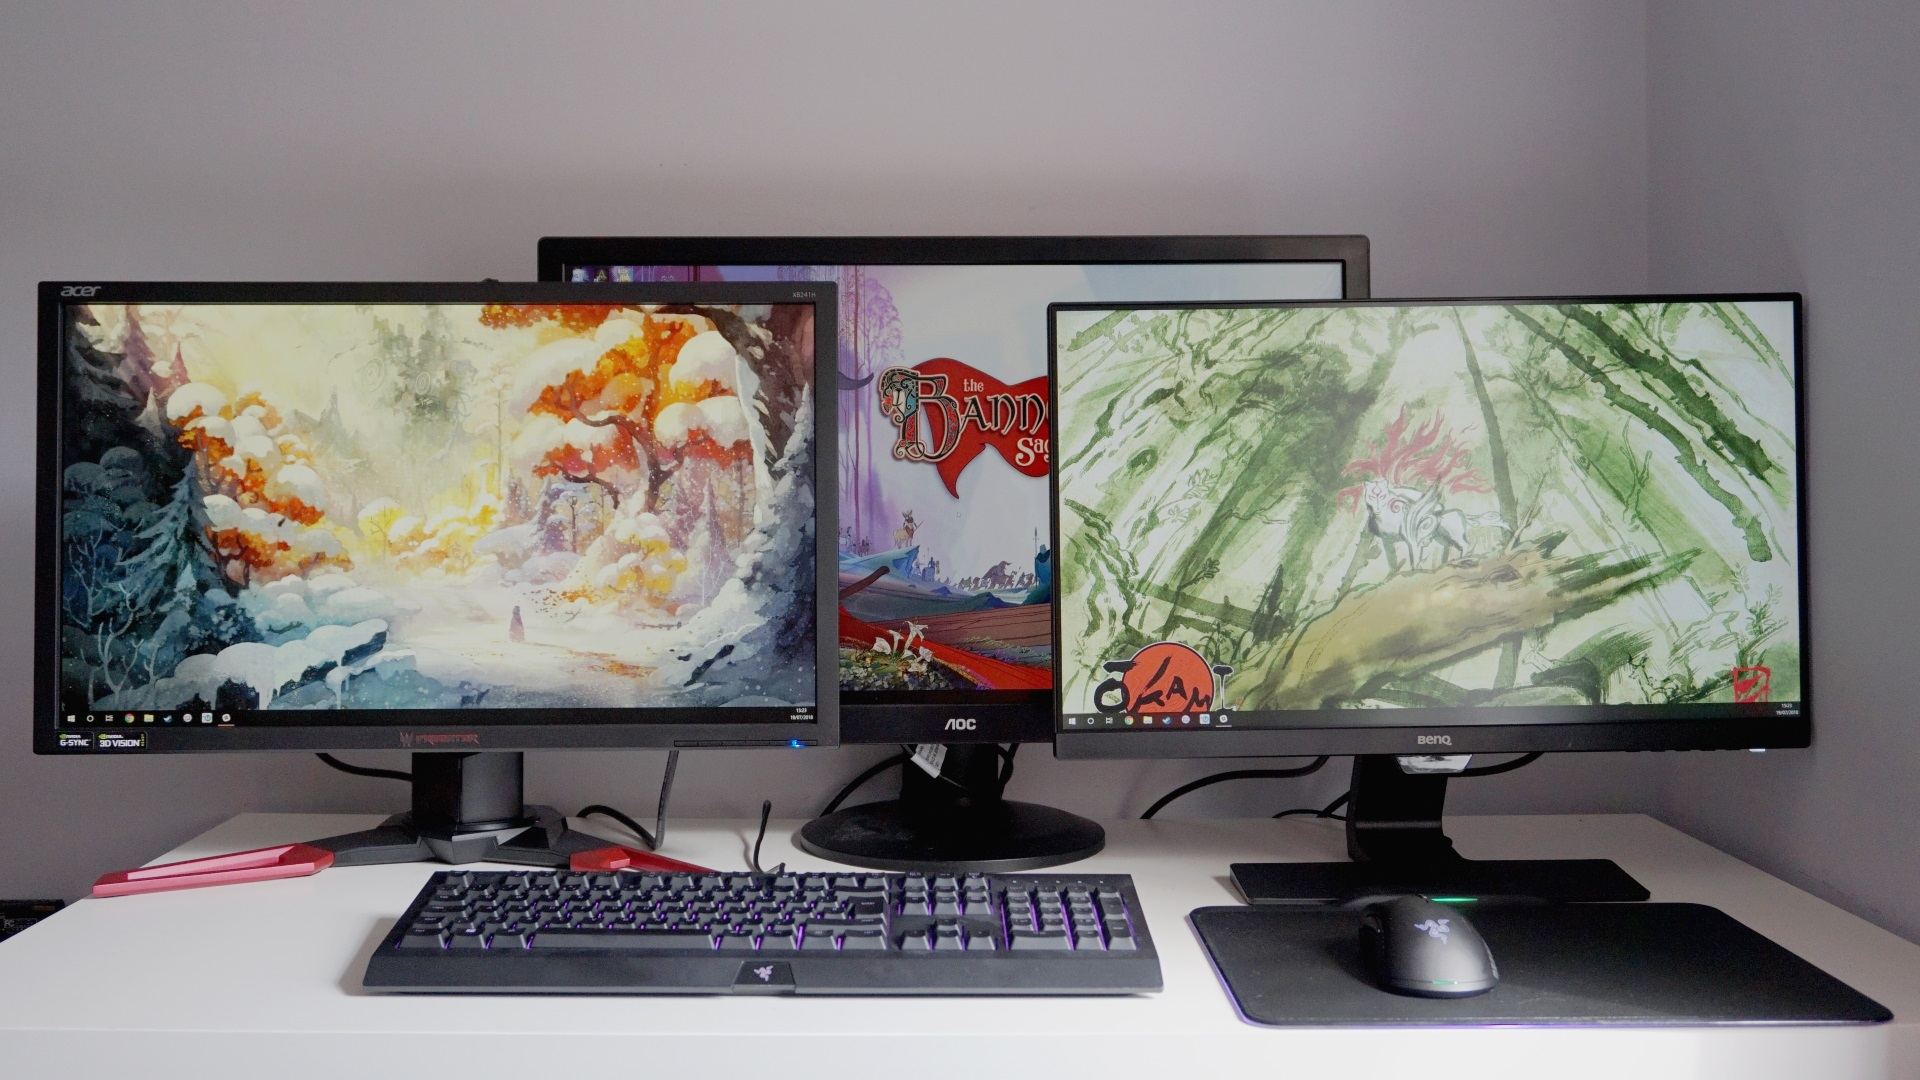 Best gaming monitor 2018: Top 1080p, 1440p and 4K HDR displays